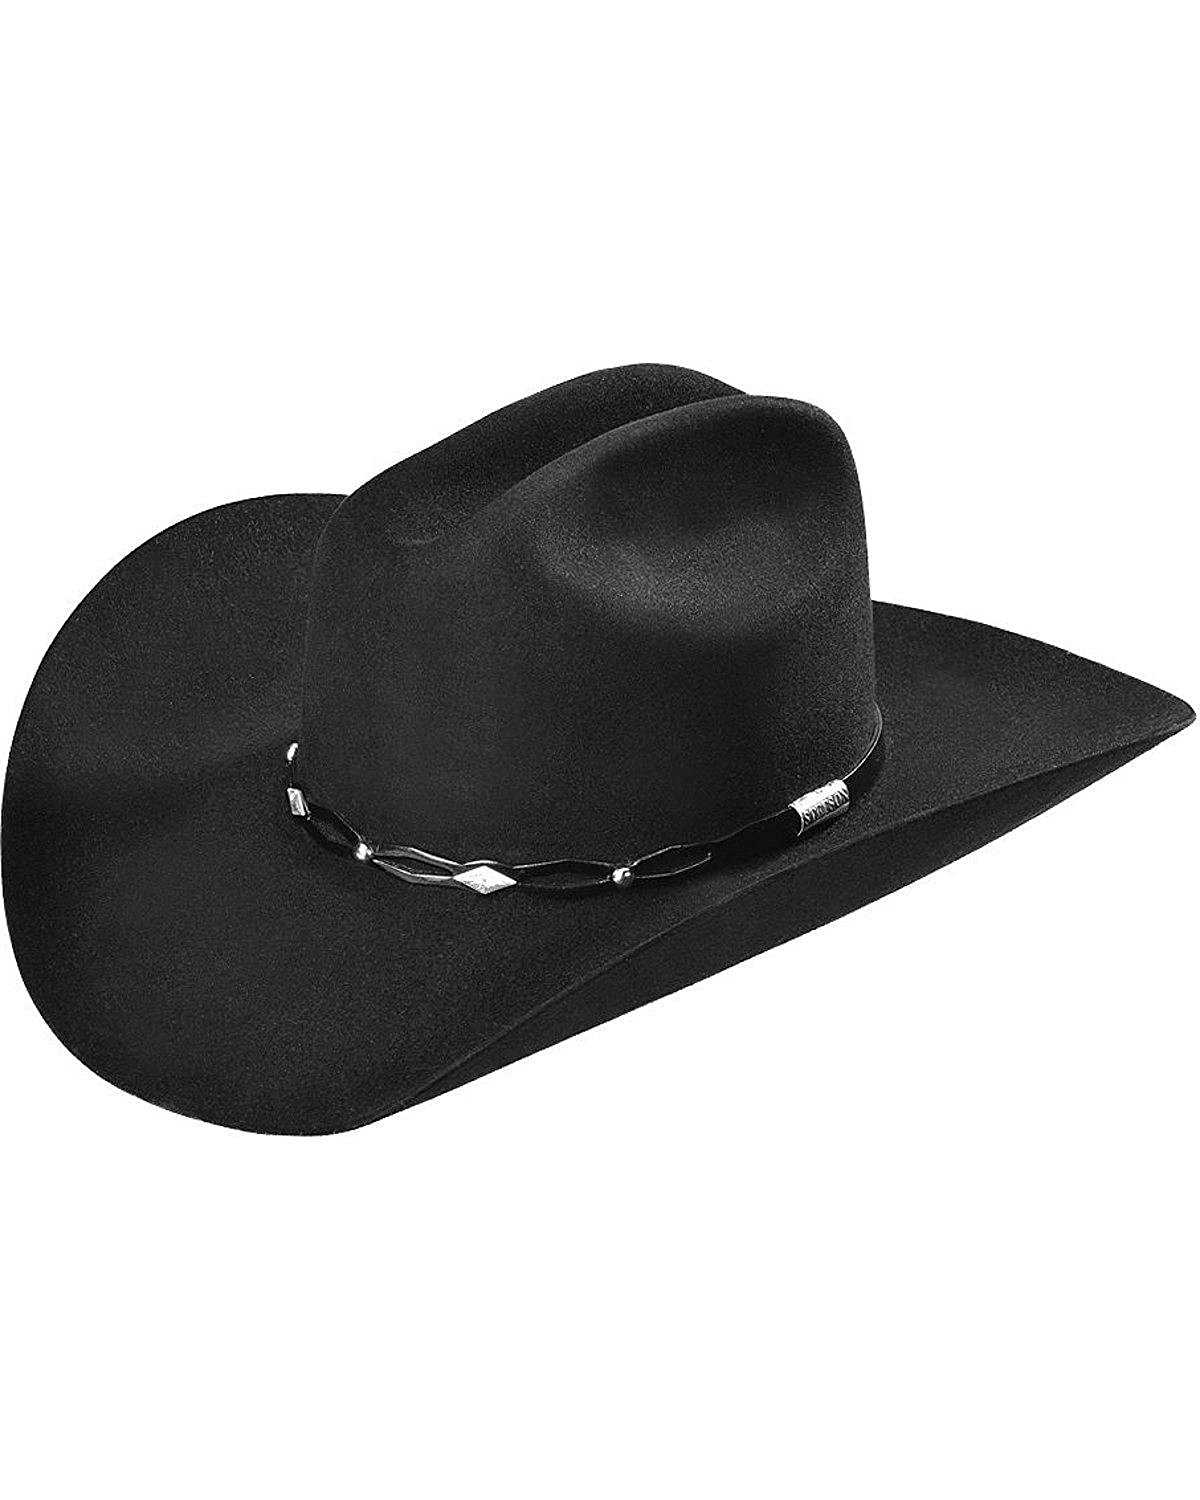 7364ae9f8be Get Quotations · Stetson Men s 6X Fur Felt Brimstone Cowboy Hat -  Sfbstn-7242 Blk